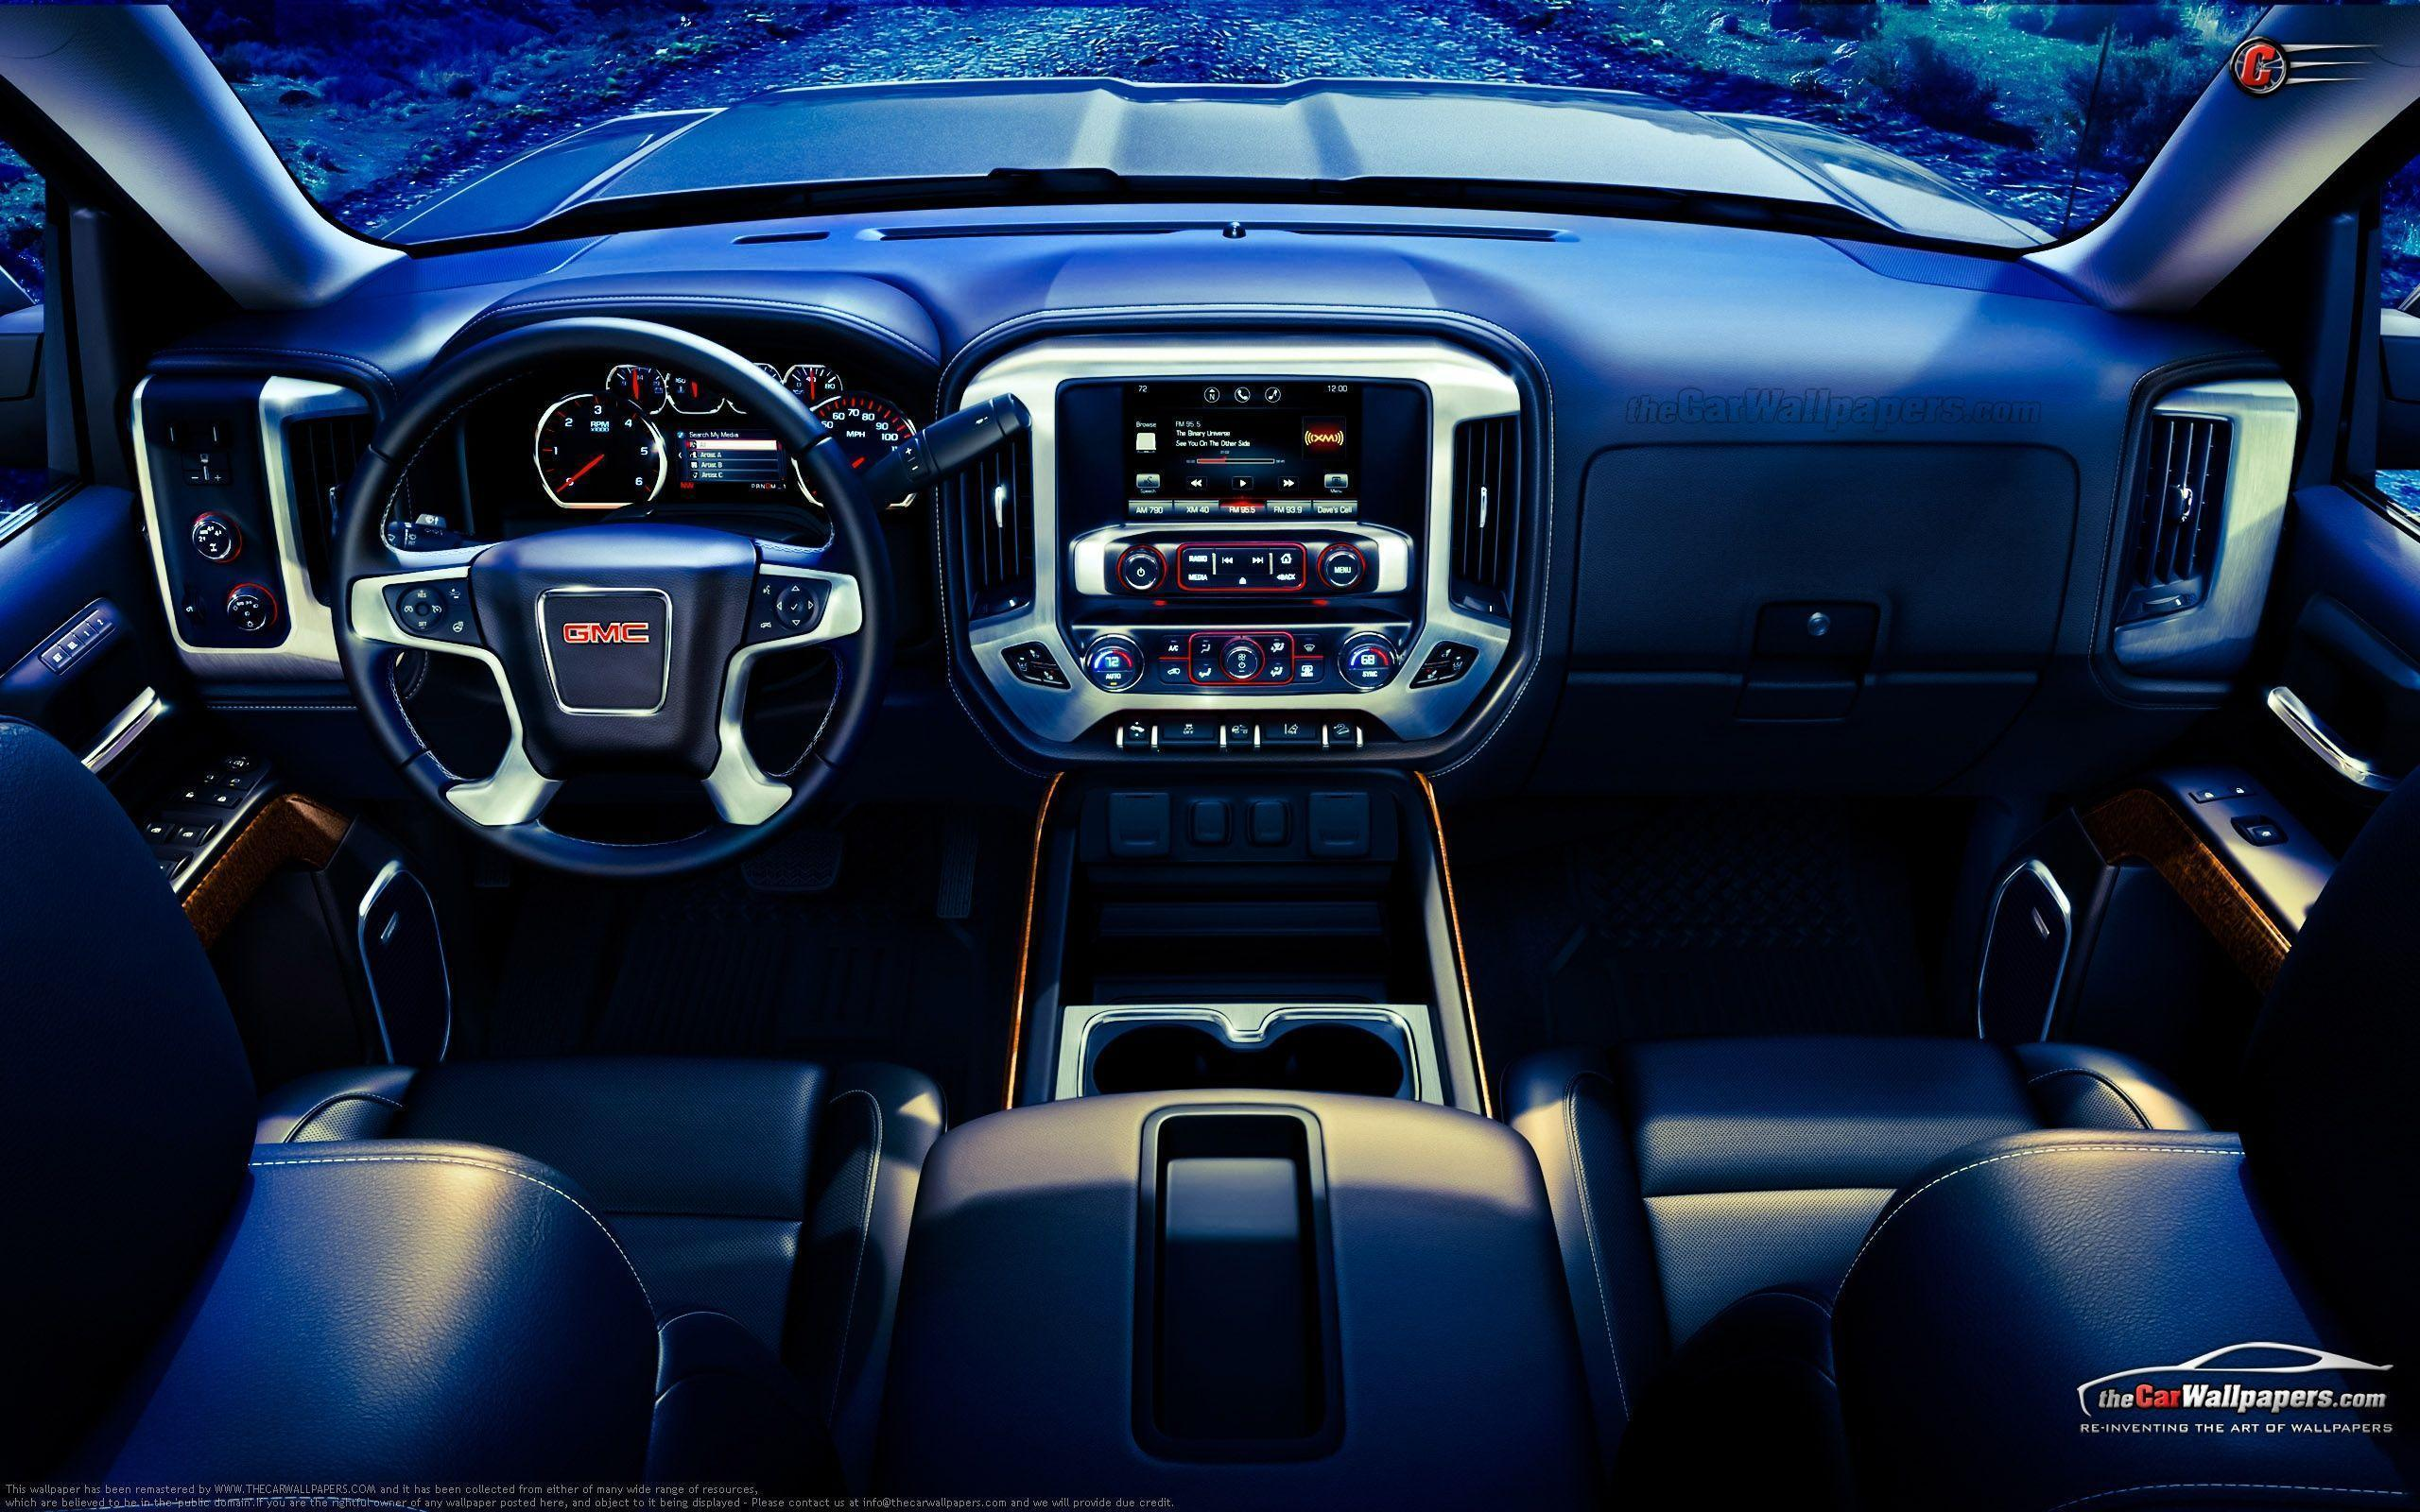 10 2014 GMC Sierra HD Wallpapers